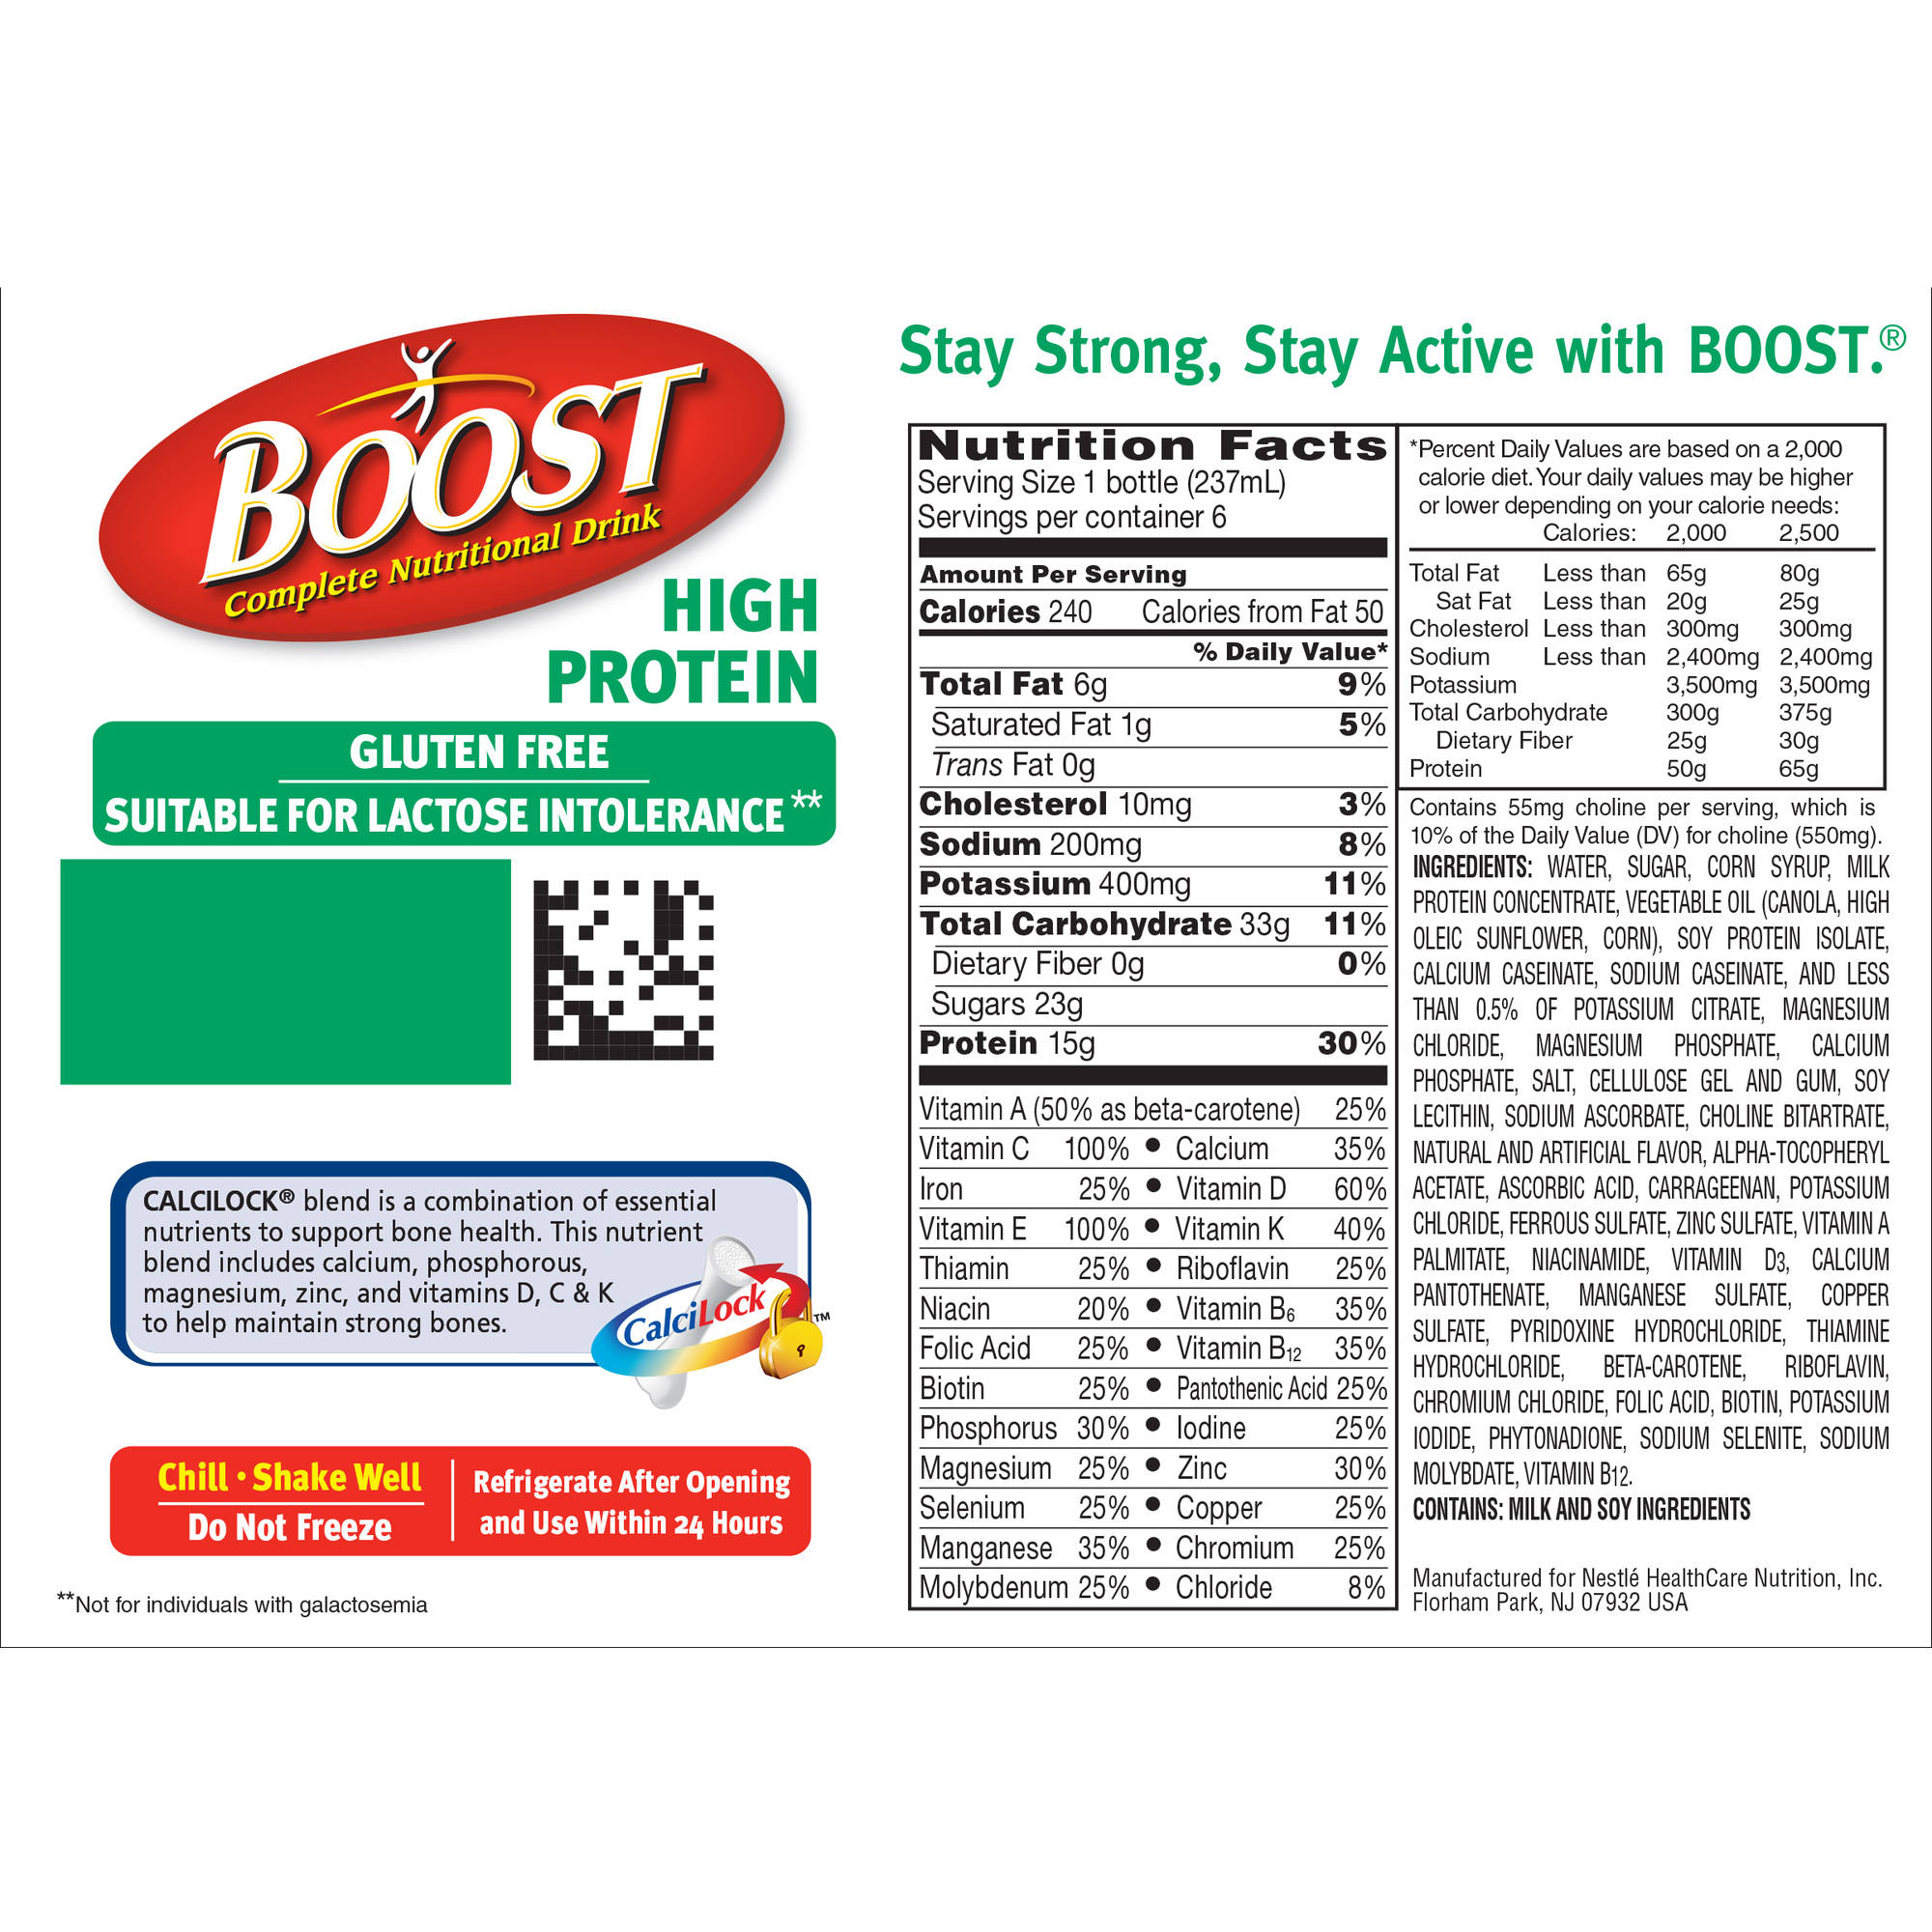 Boost nutritional drink coupons canada